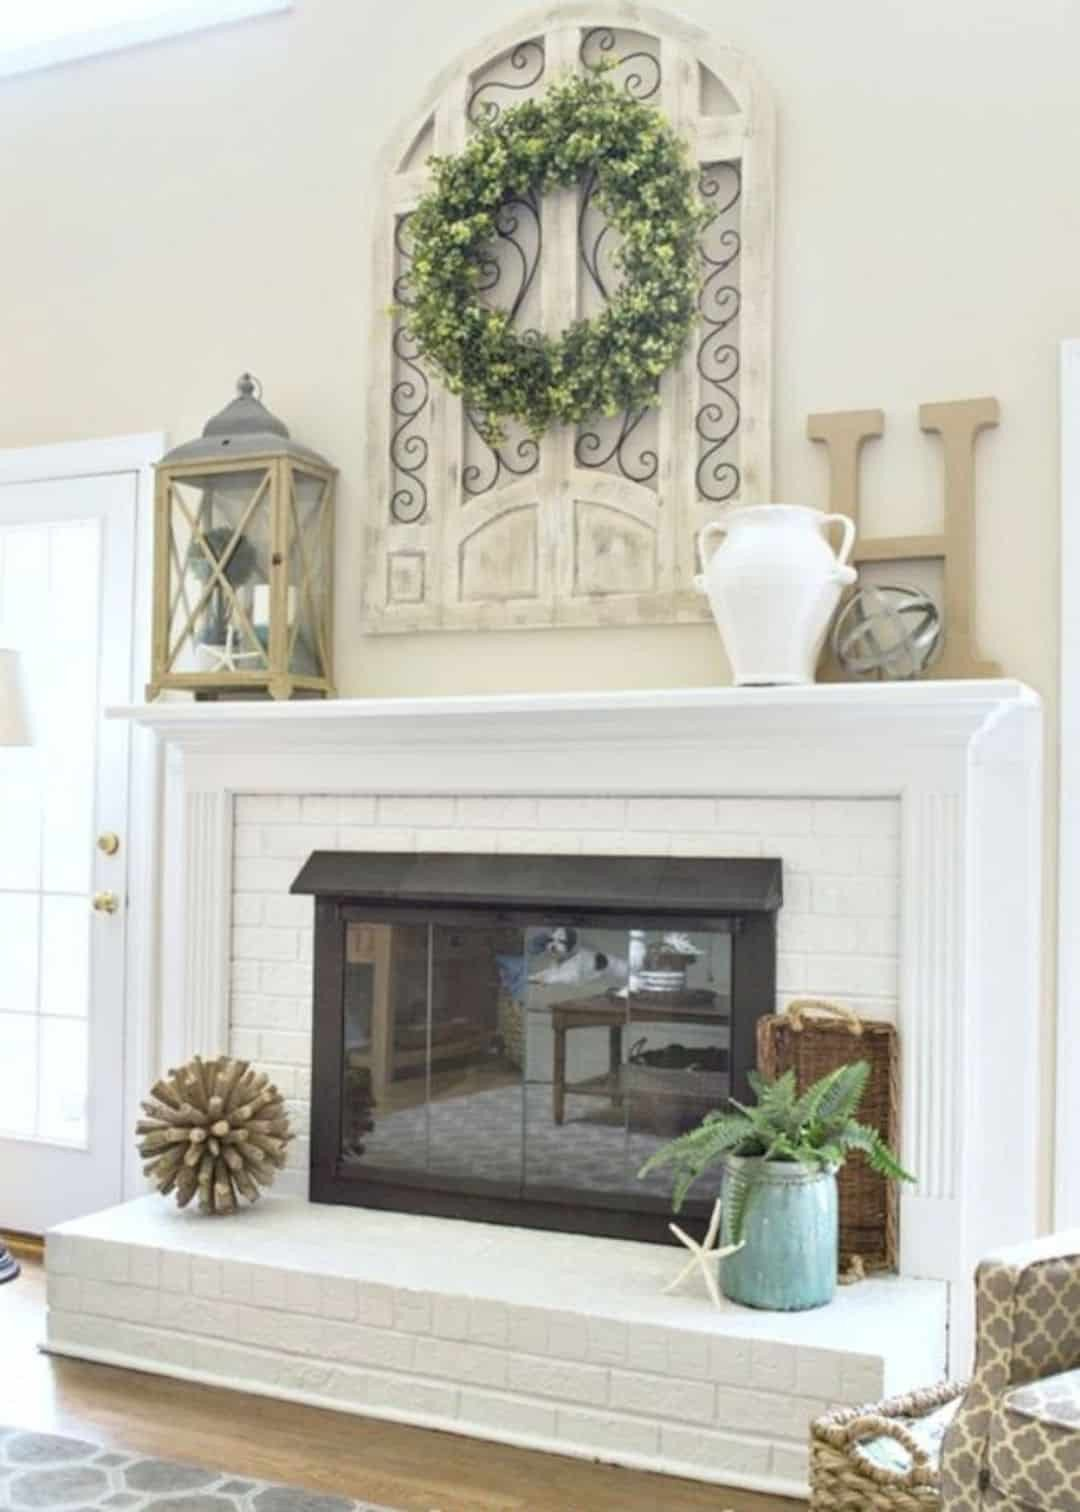 Ideas for Fireplace Mantel Decor Best Of 16 Fireplace Mantel Decorating Ideas